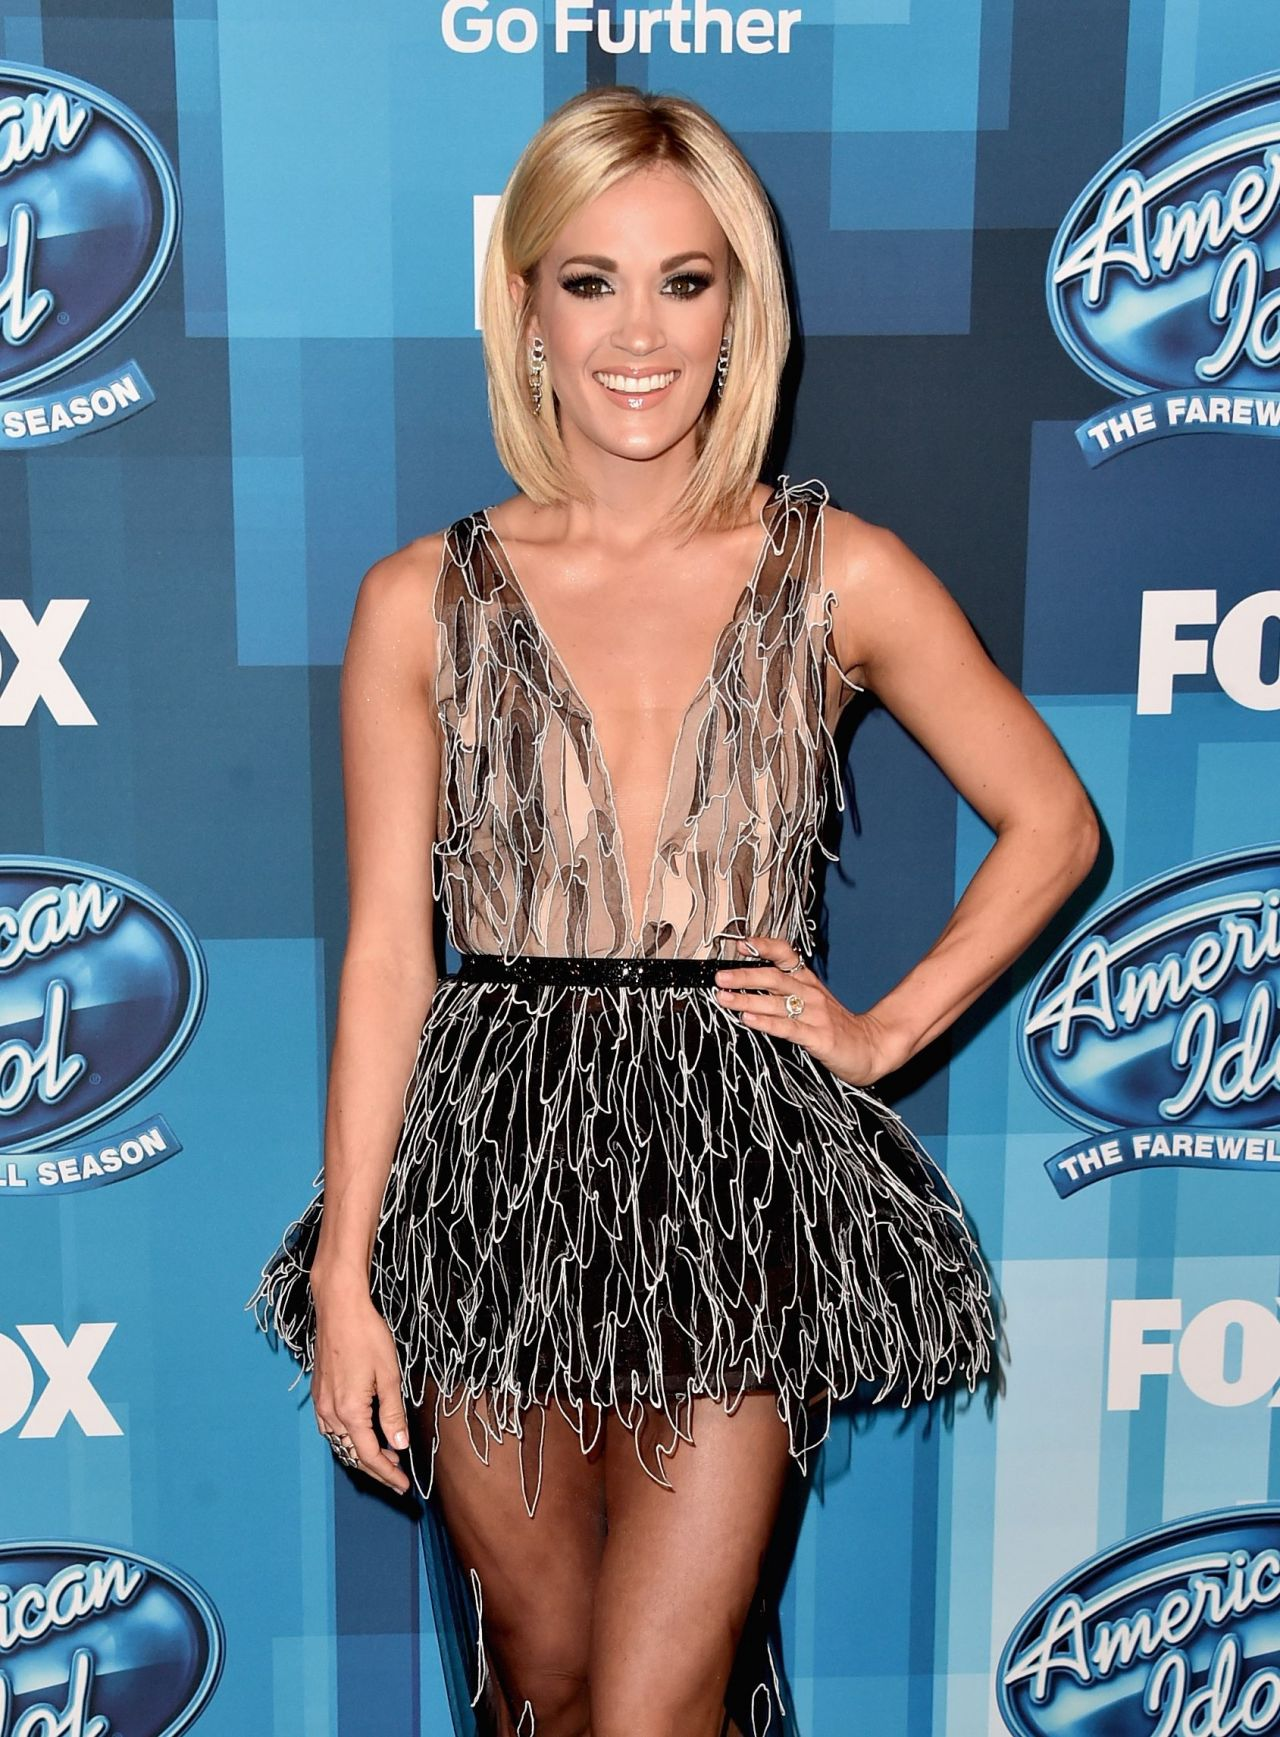 carrie underwood american idol finale for the farewell